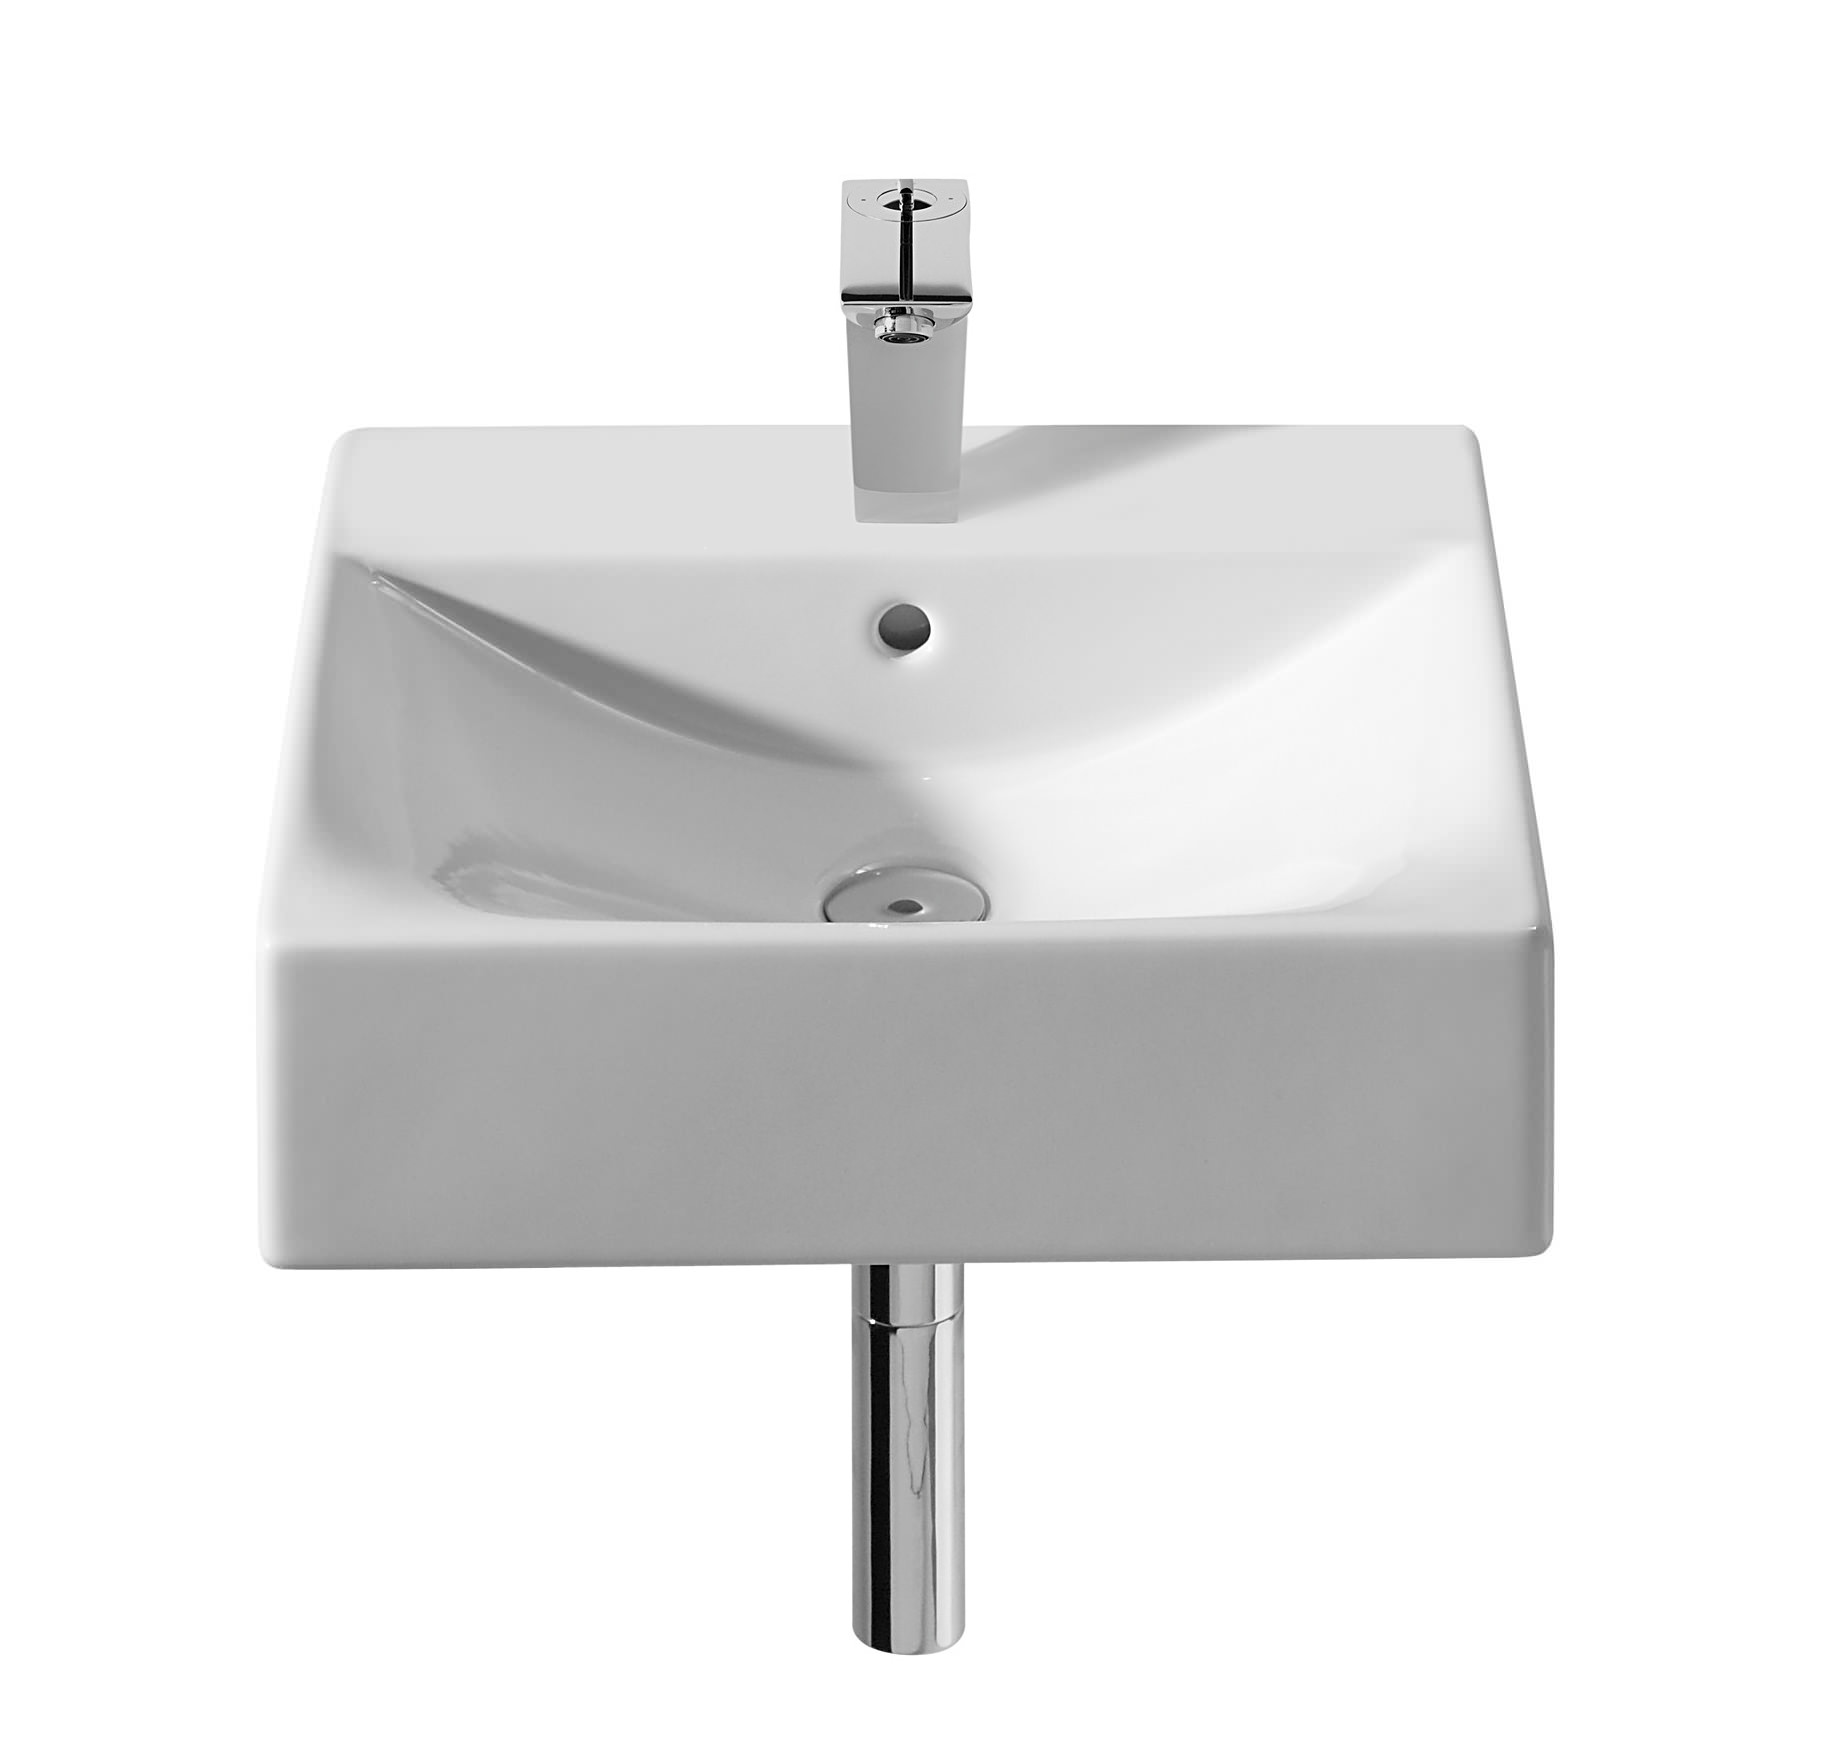 roca diverta vanity basin with 1 tap hole 470mm wide